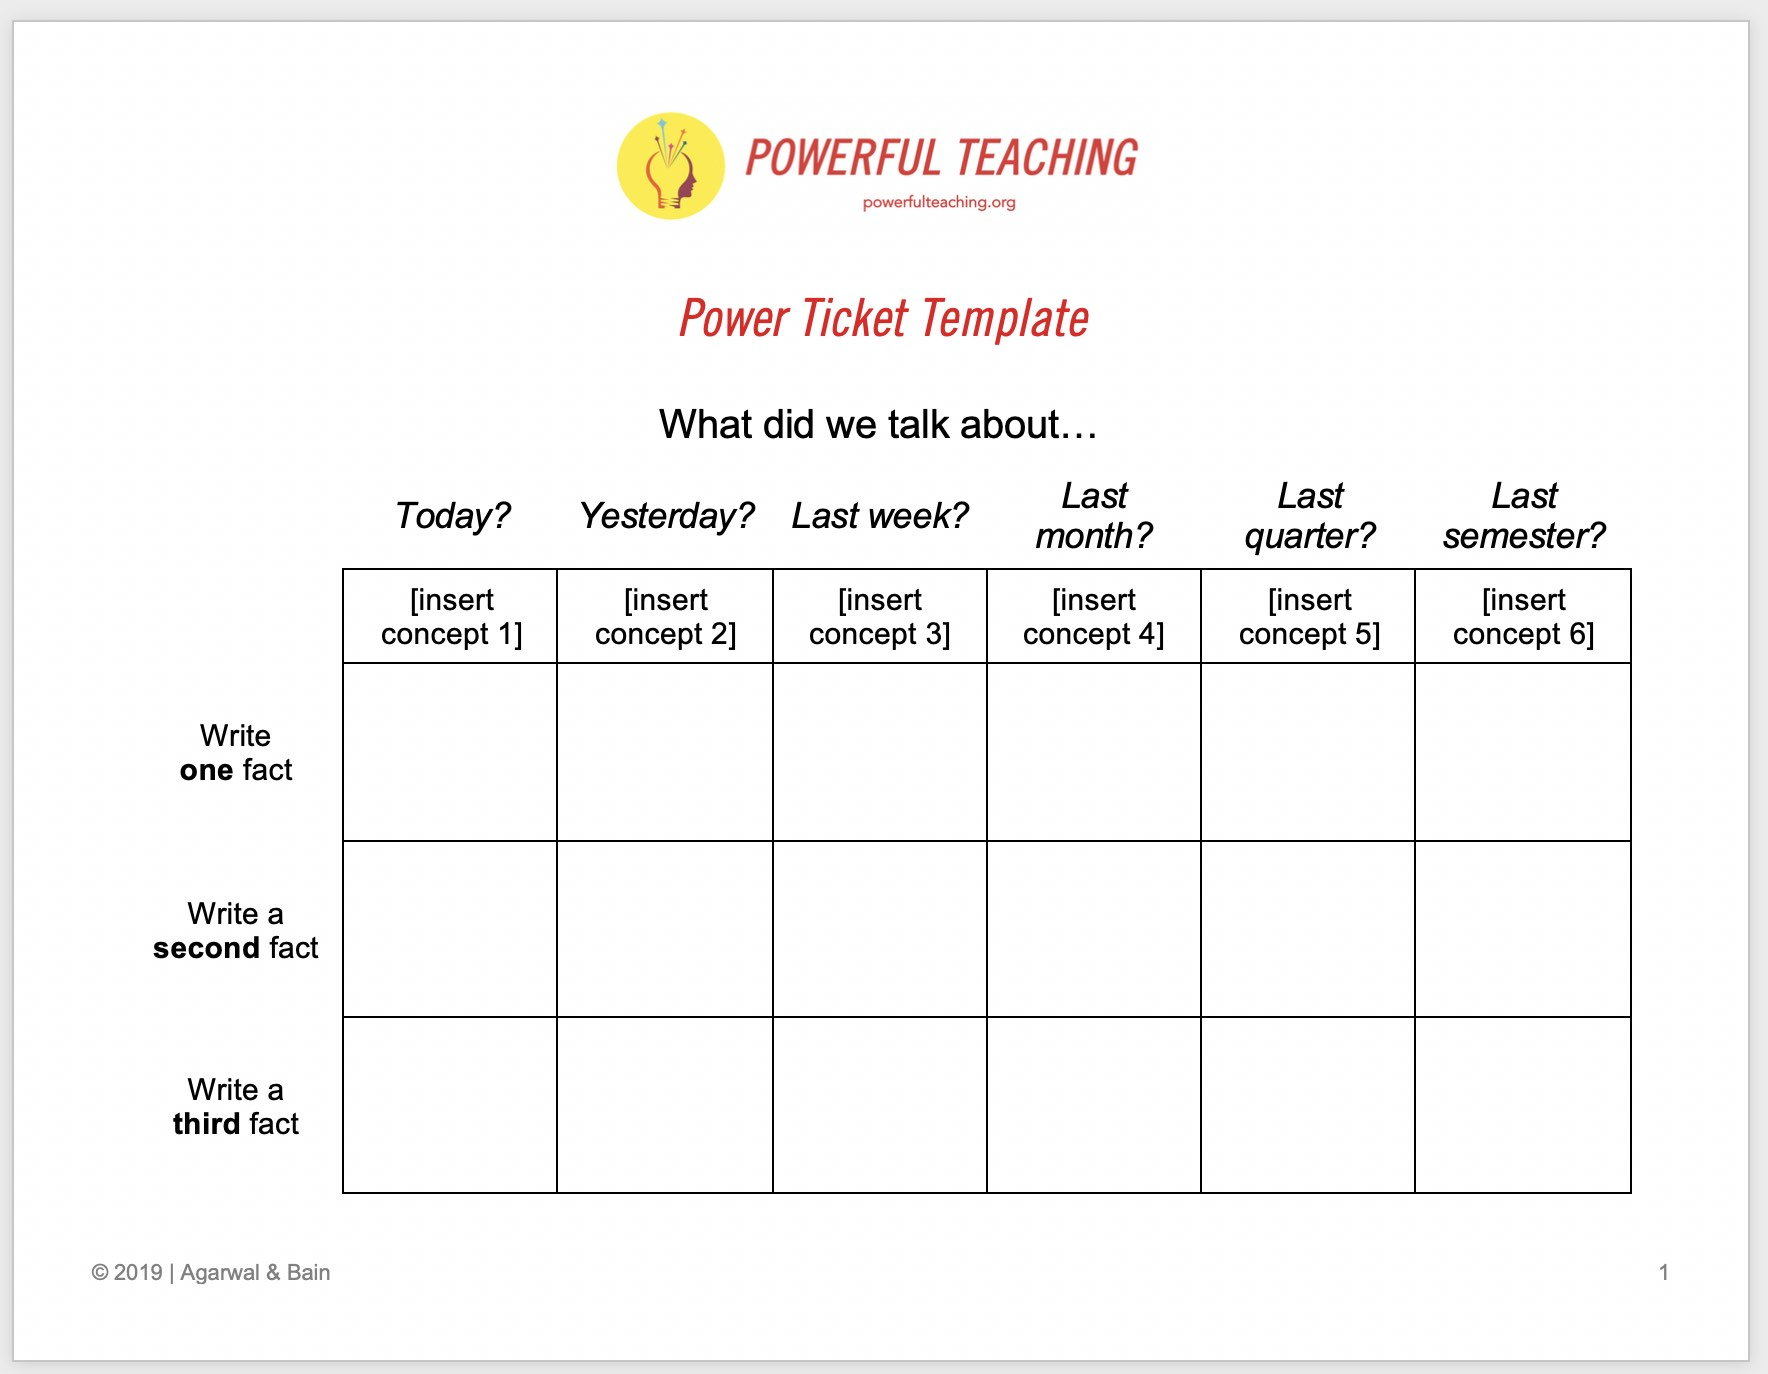 Power Ticket Template.jpg